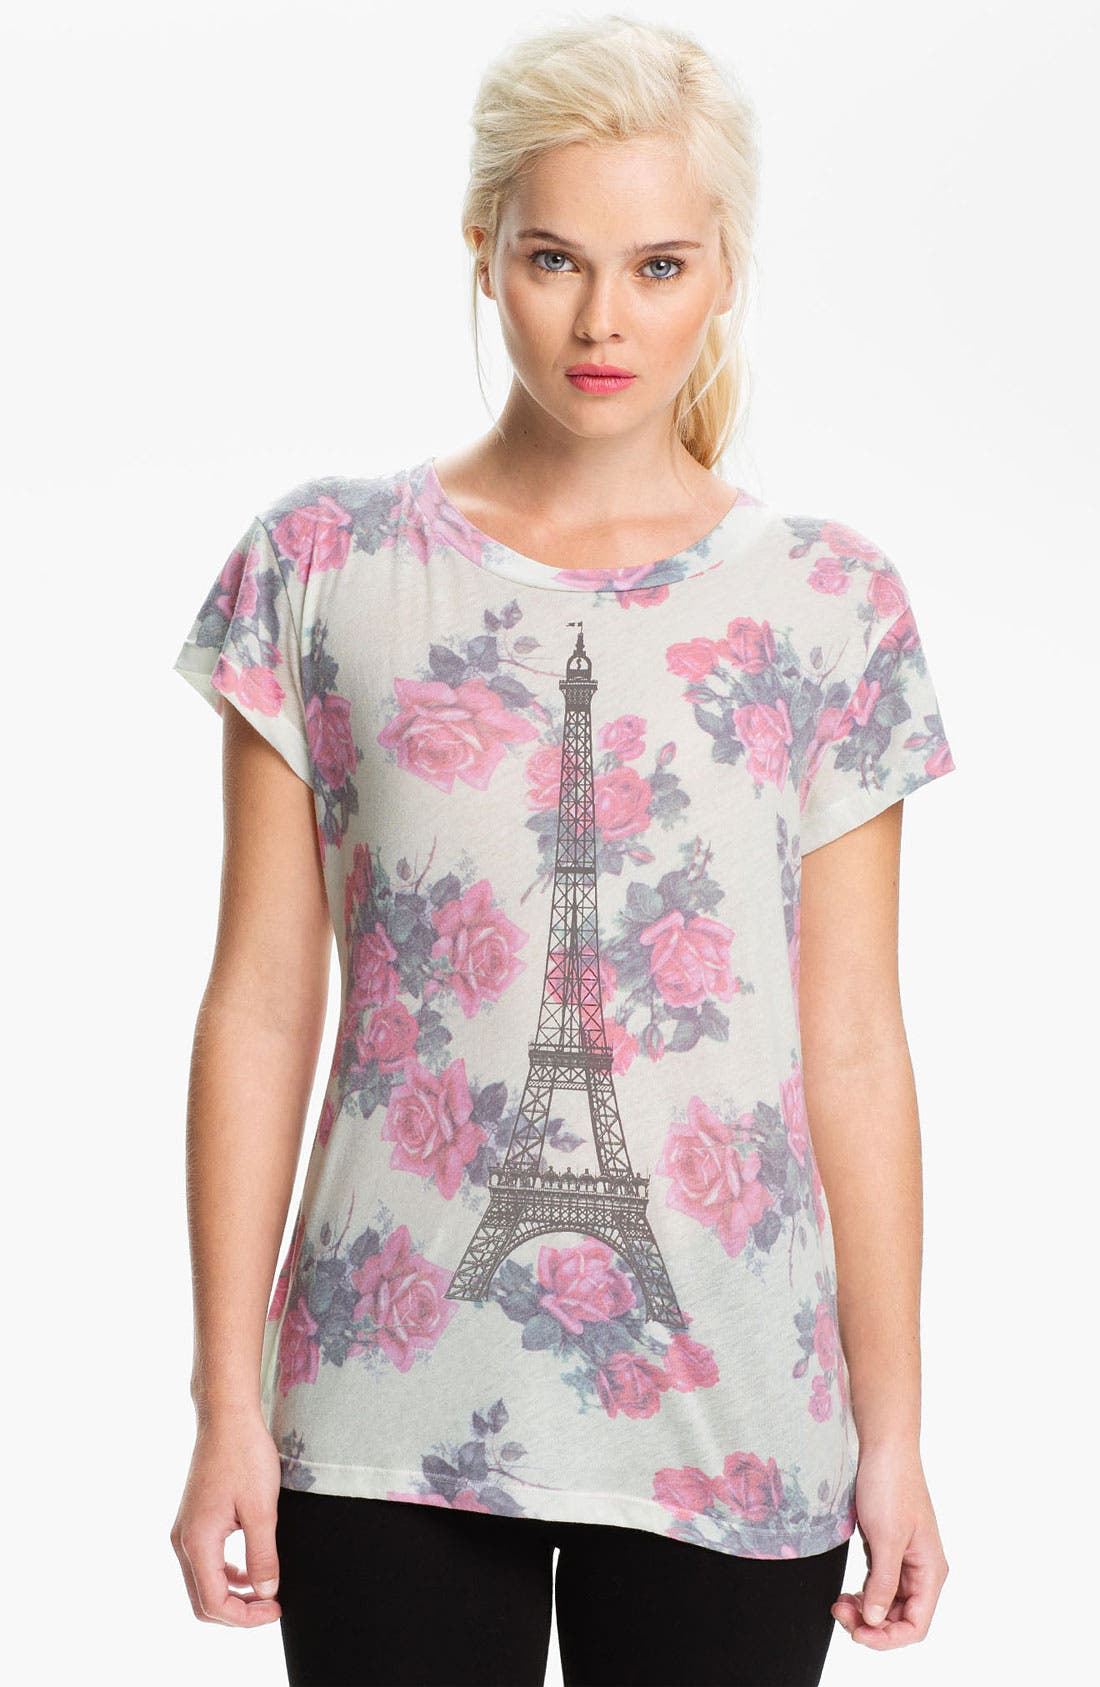 Alternate Image 1 Selected - Wildfox 'Tour Eiffel' Rose Print Graphic Tee